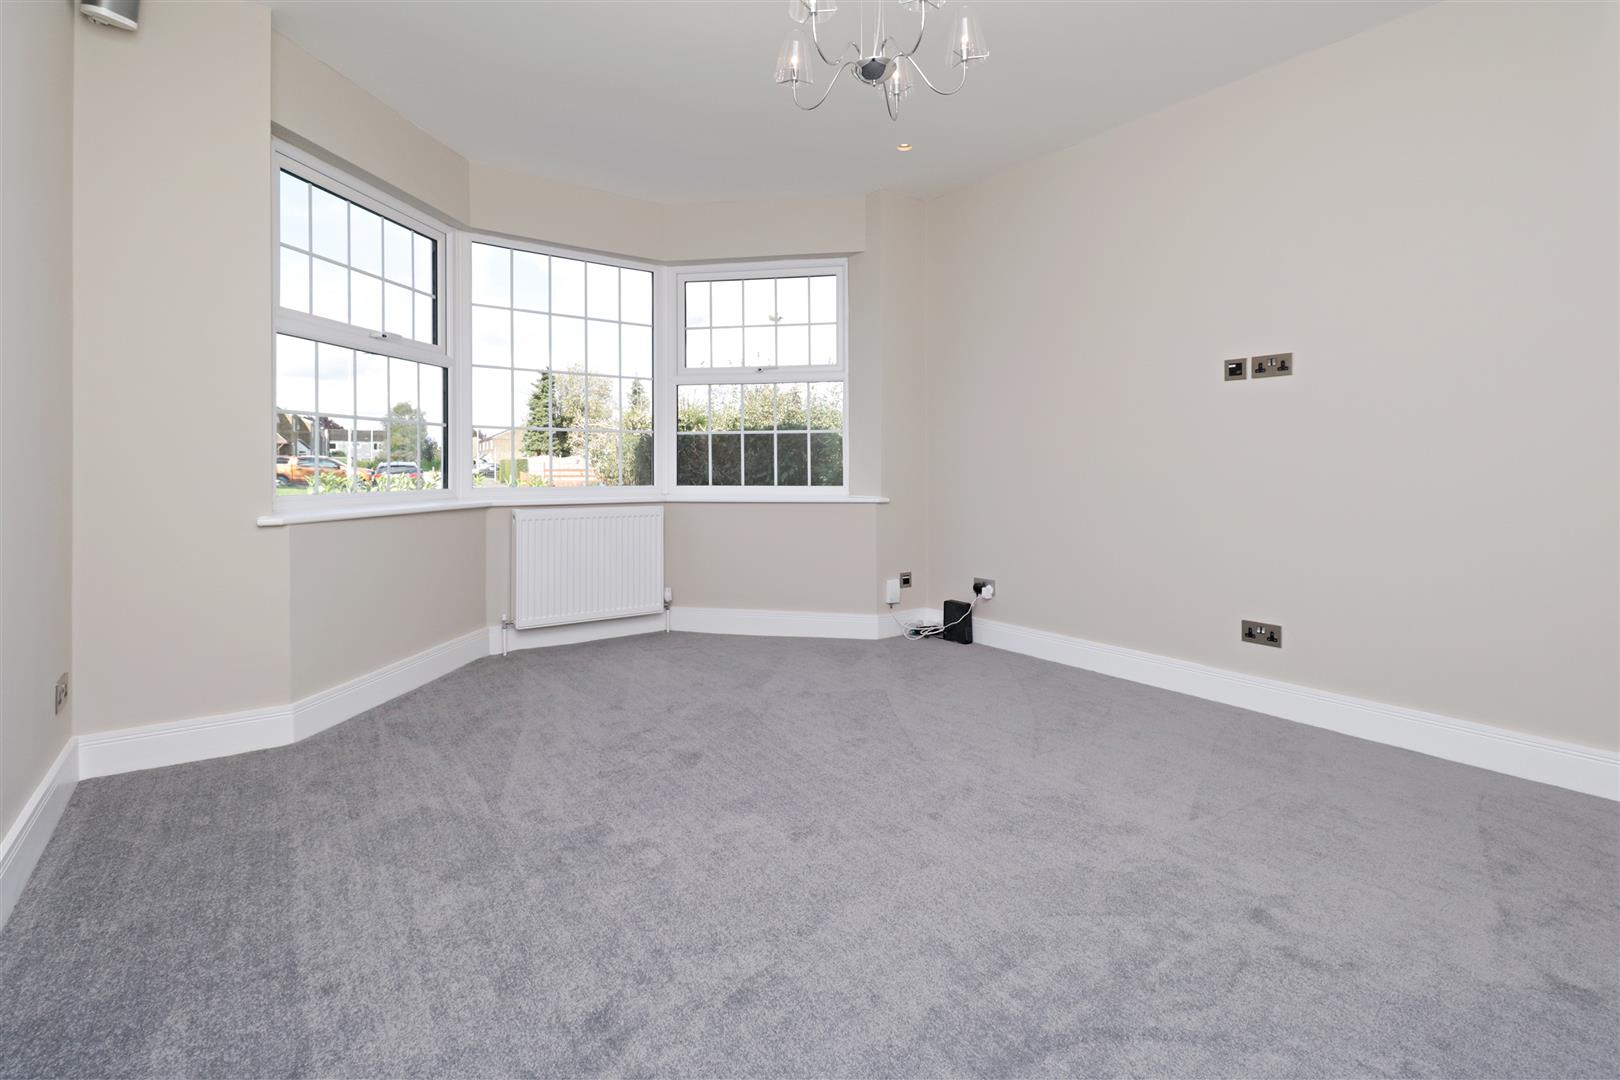 4 bed to rent in Loom Lane, Radlett - (Property Image 5)